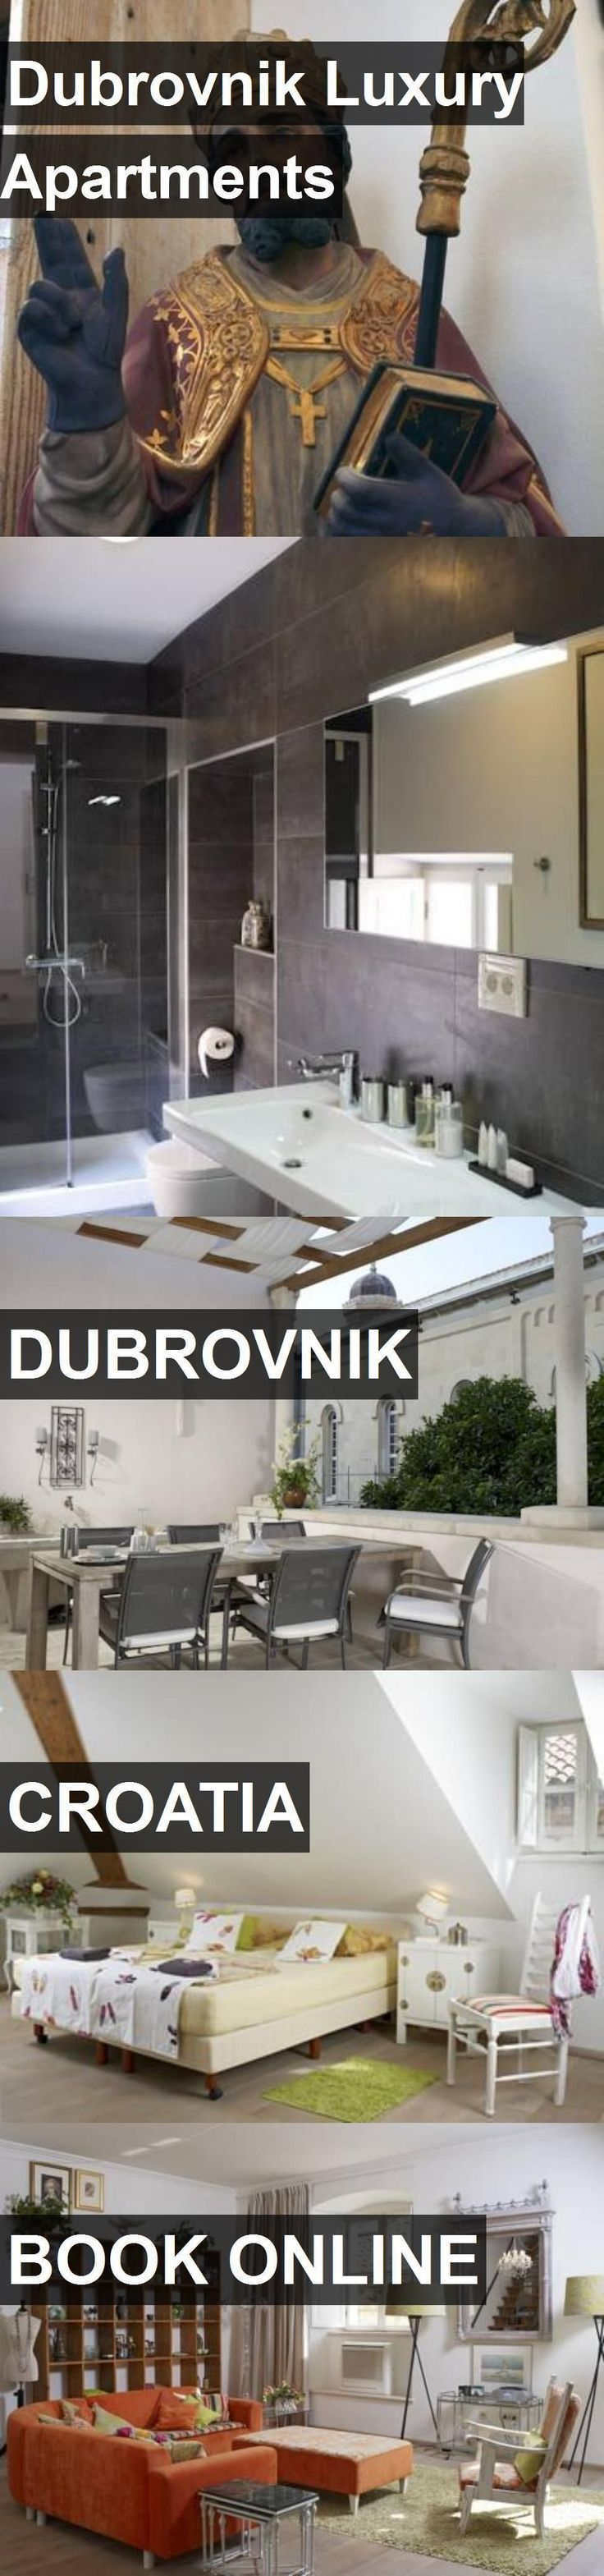 Hotel Dubrovnik Luxury Apartments in Dubrovnik, Croatia. For more information, photos, reviews and best prices please follow the link. #Croatia #Dubrovnik #DubrovnikLuxuryApartments #hotel #travel #vacation #luxuryapartment